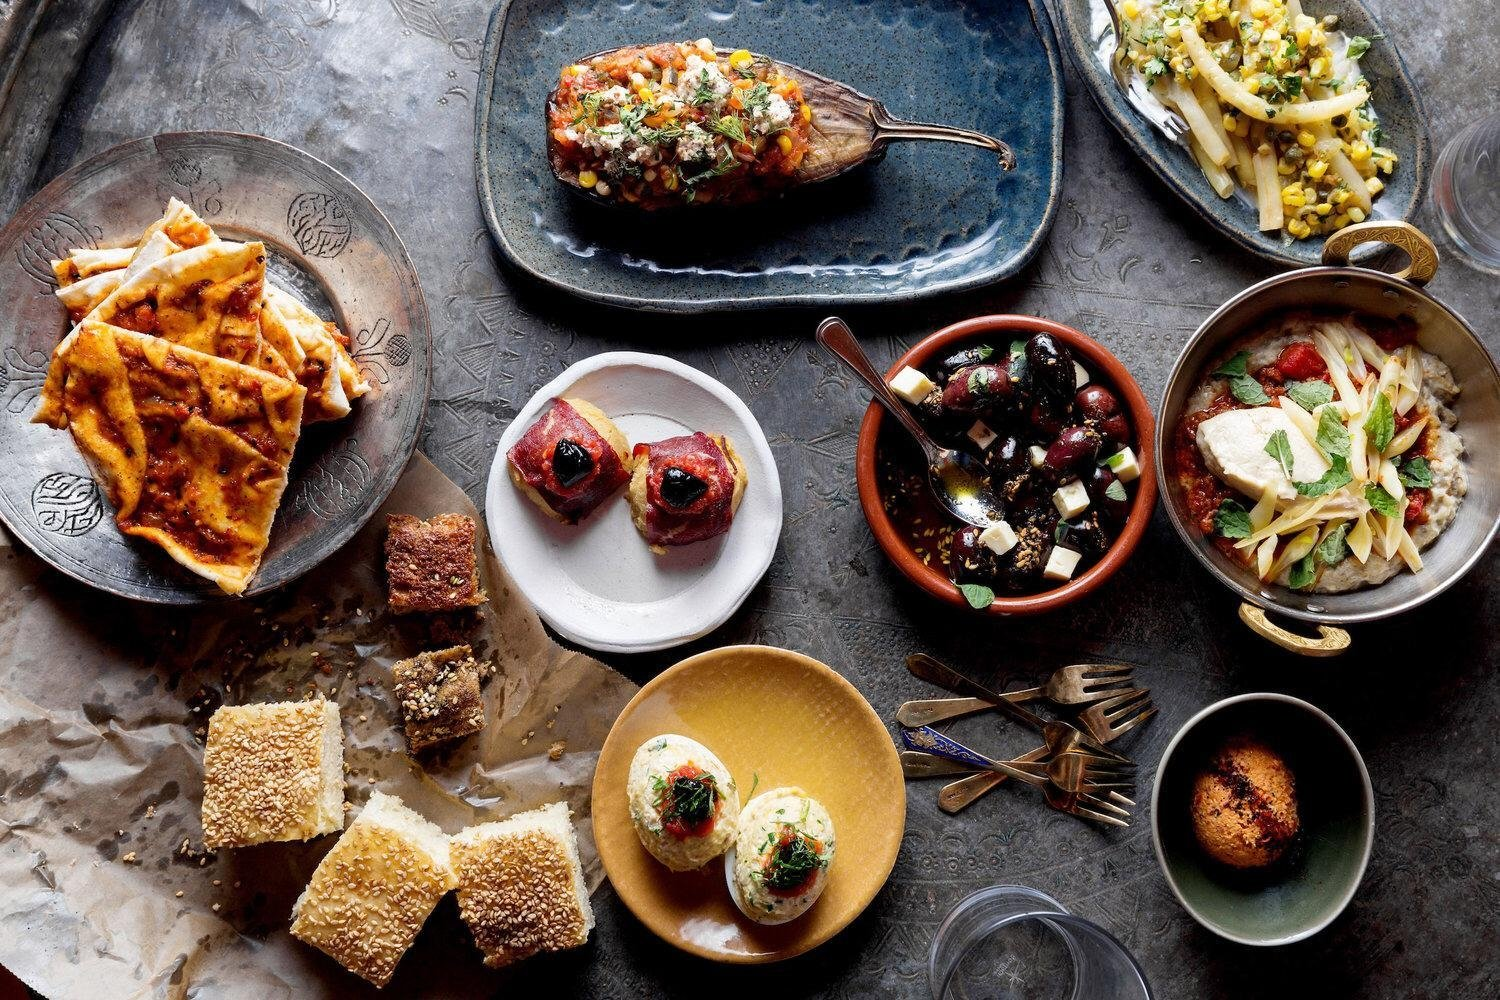 Oleana blends elements and ingredients, styles and palates shared between Turkey, the Levant and Greece. (Courtesy of Oleana)